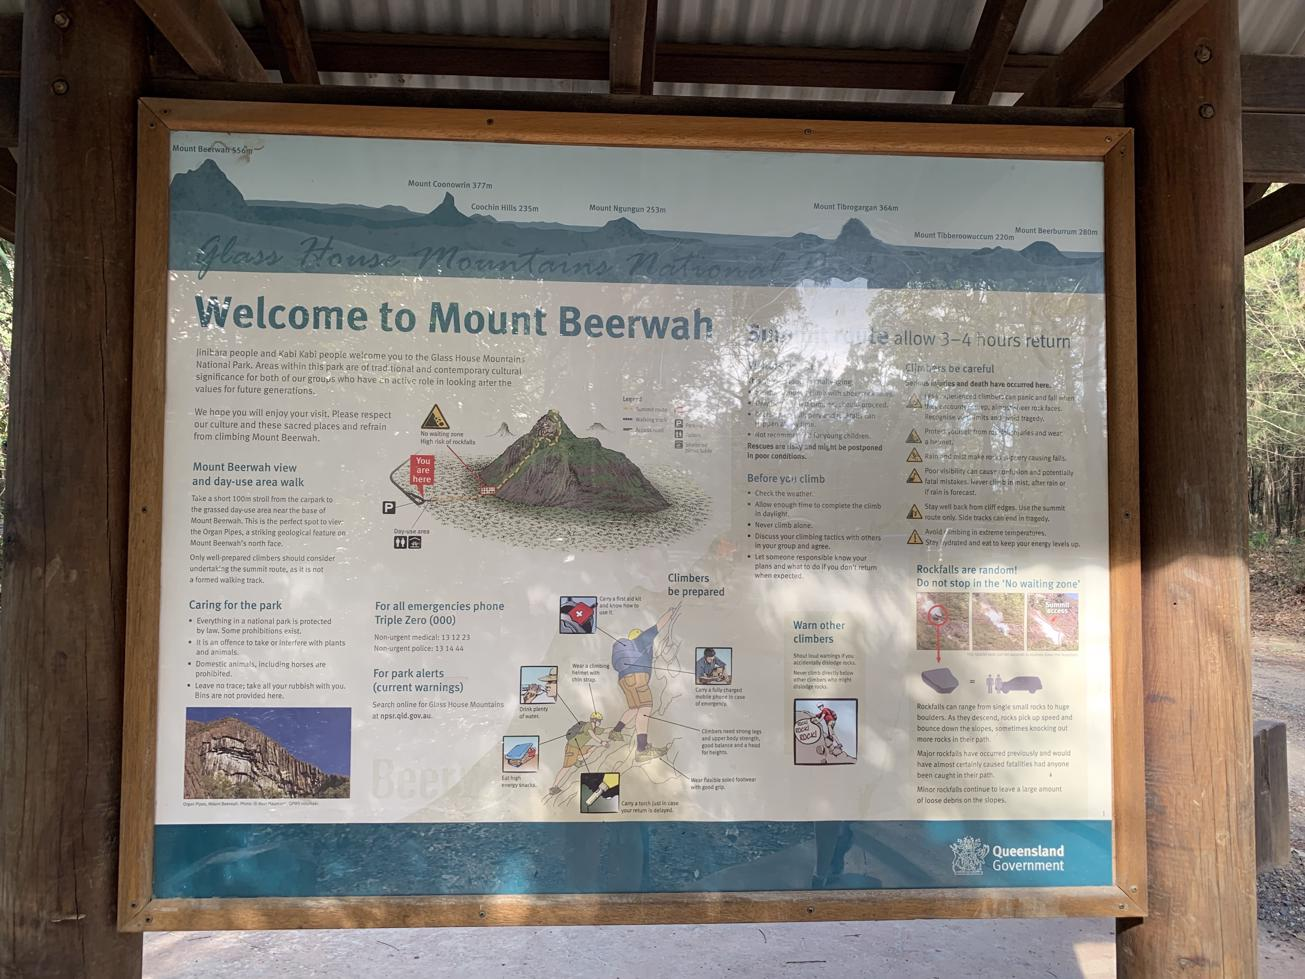 Trail Image for Glass House Mountains National Park: Mt Beerwah View